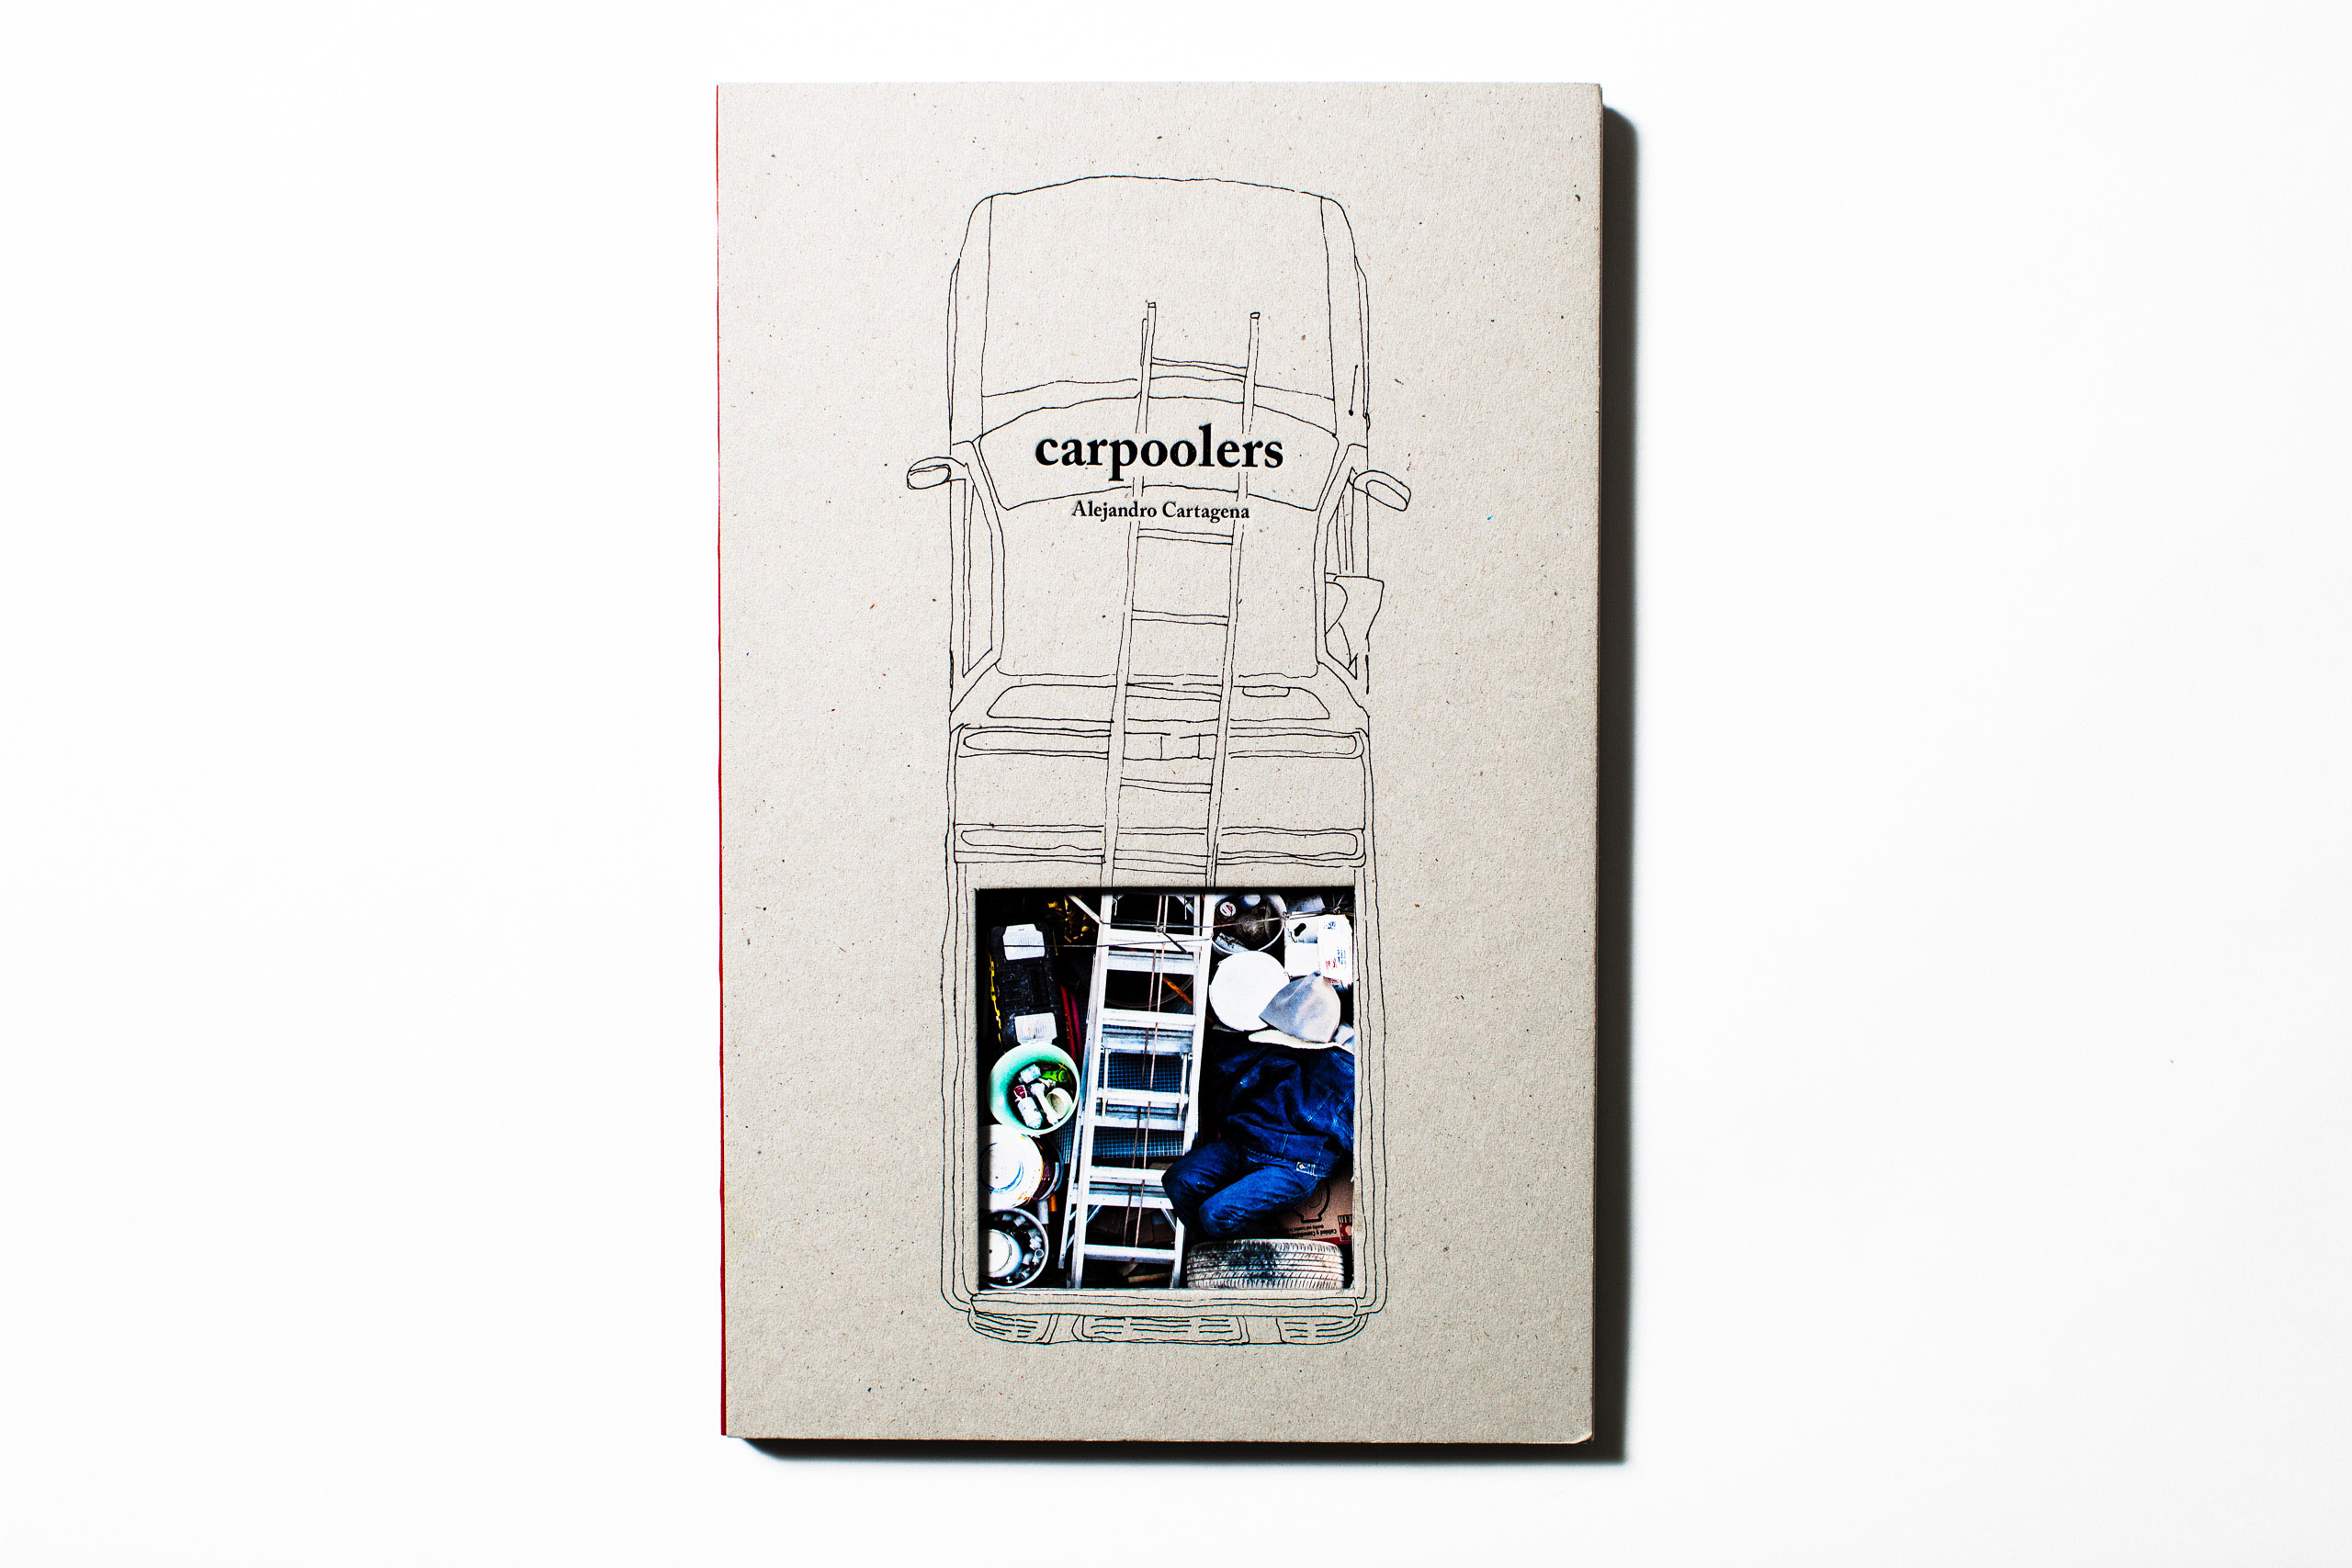 Car poolers                                 by                               Alejandro Cartagena, self-published, selected by Martin Parr, photographer at Magnum Photos.